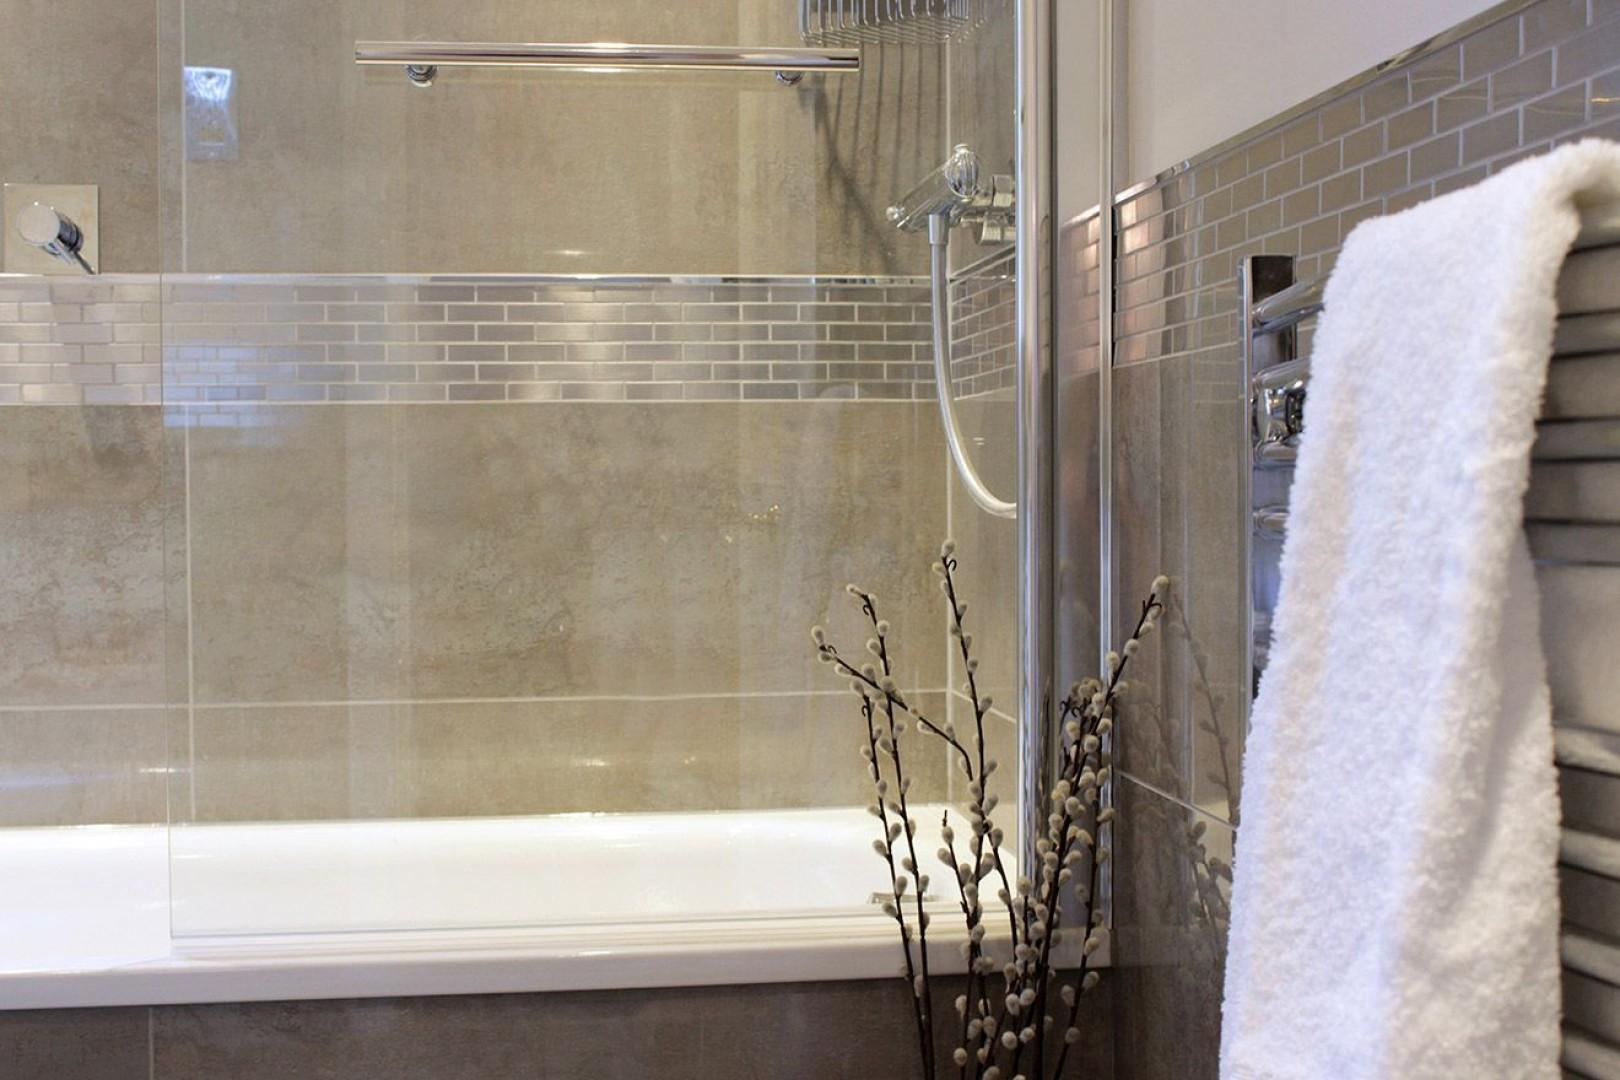 Enjoy your choice of a relaxing shower or bath